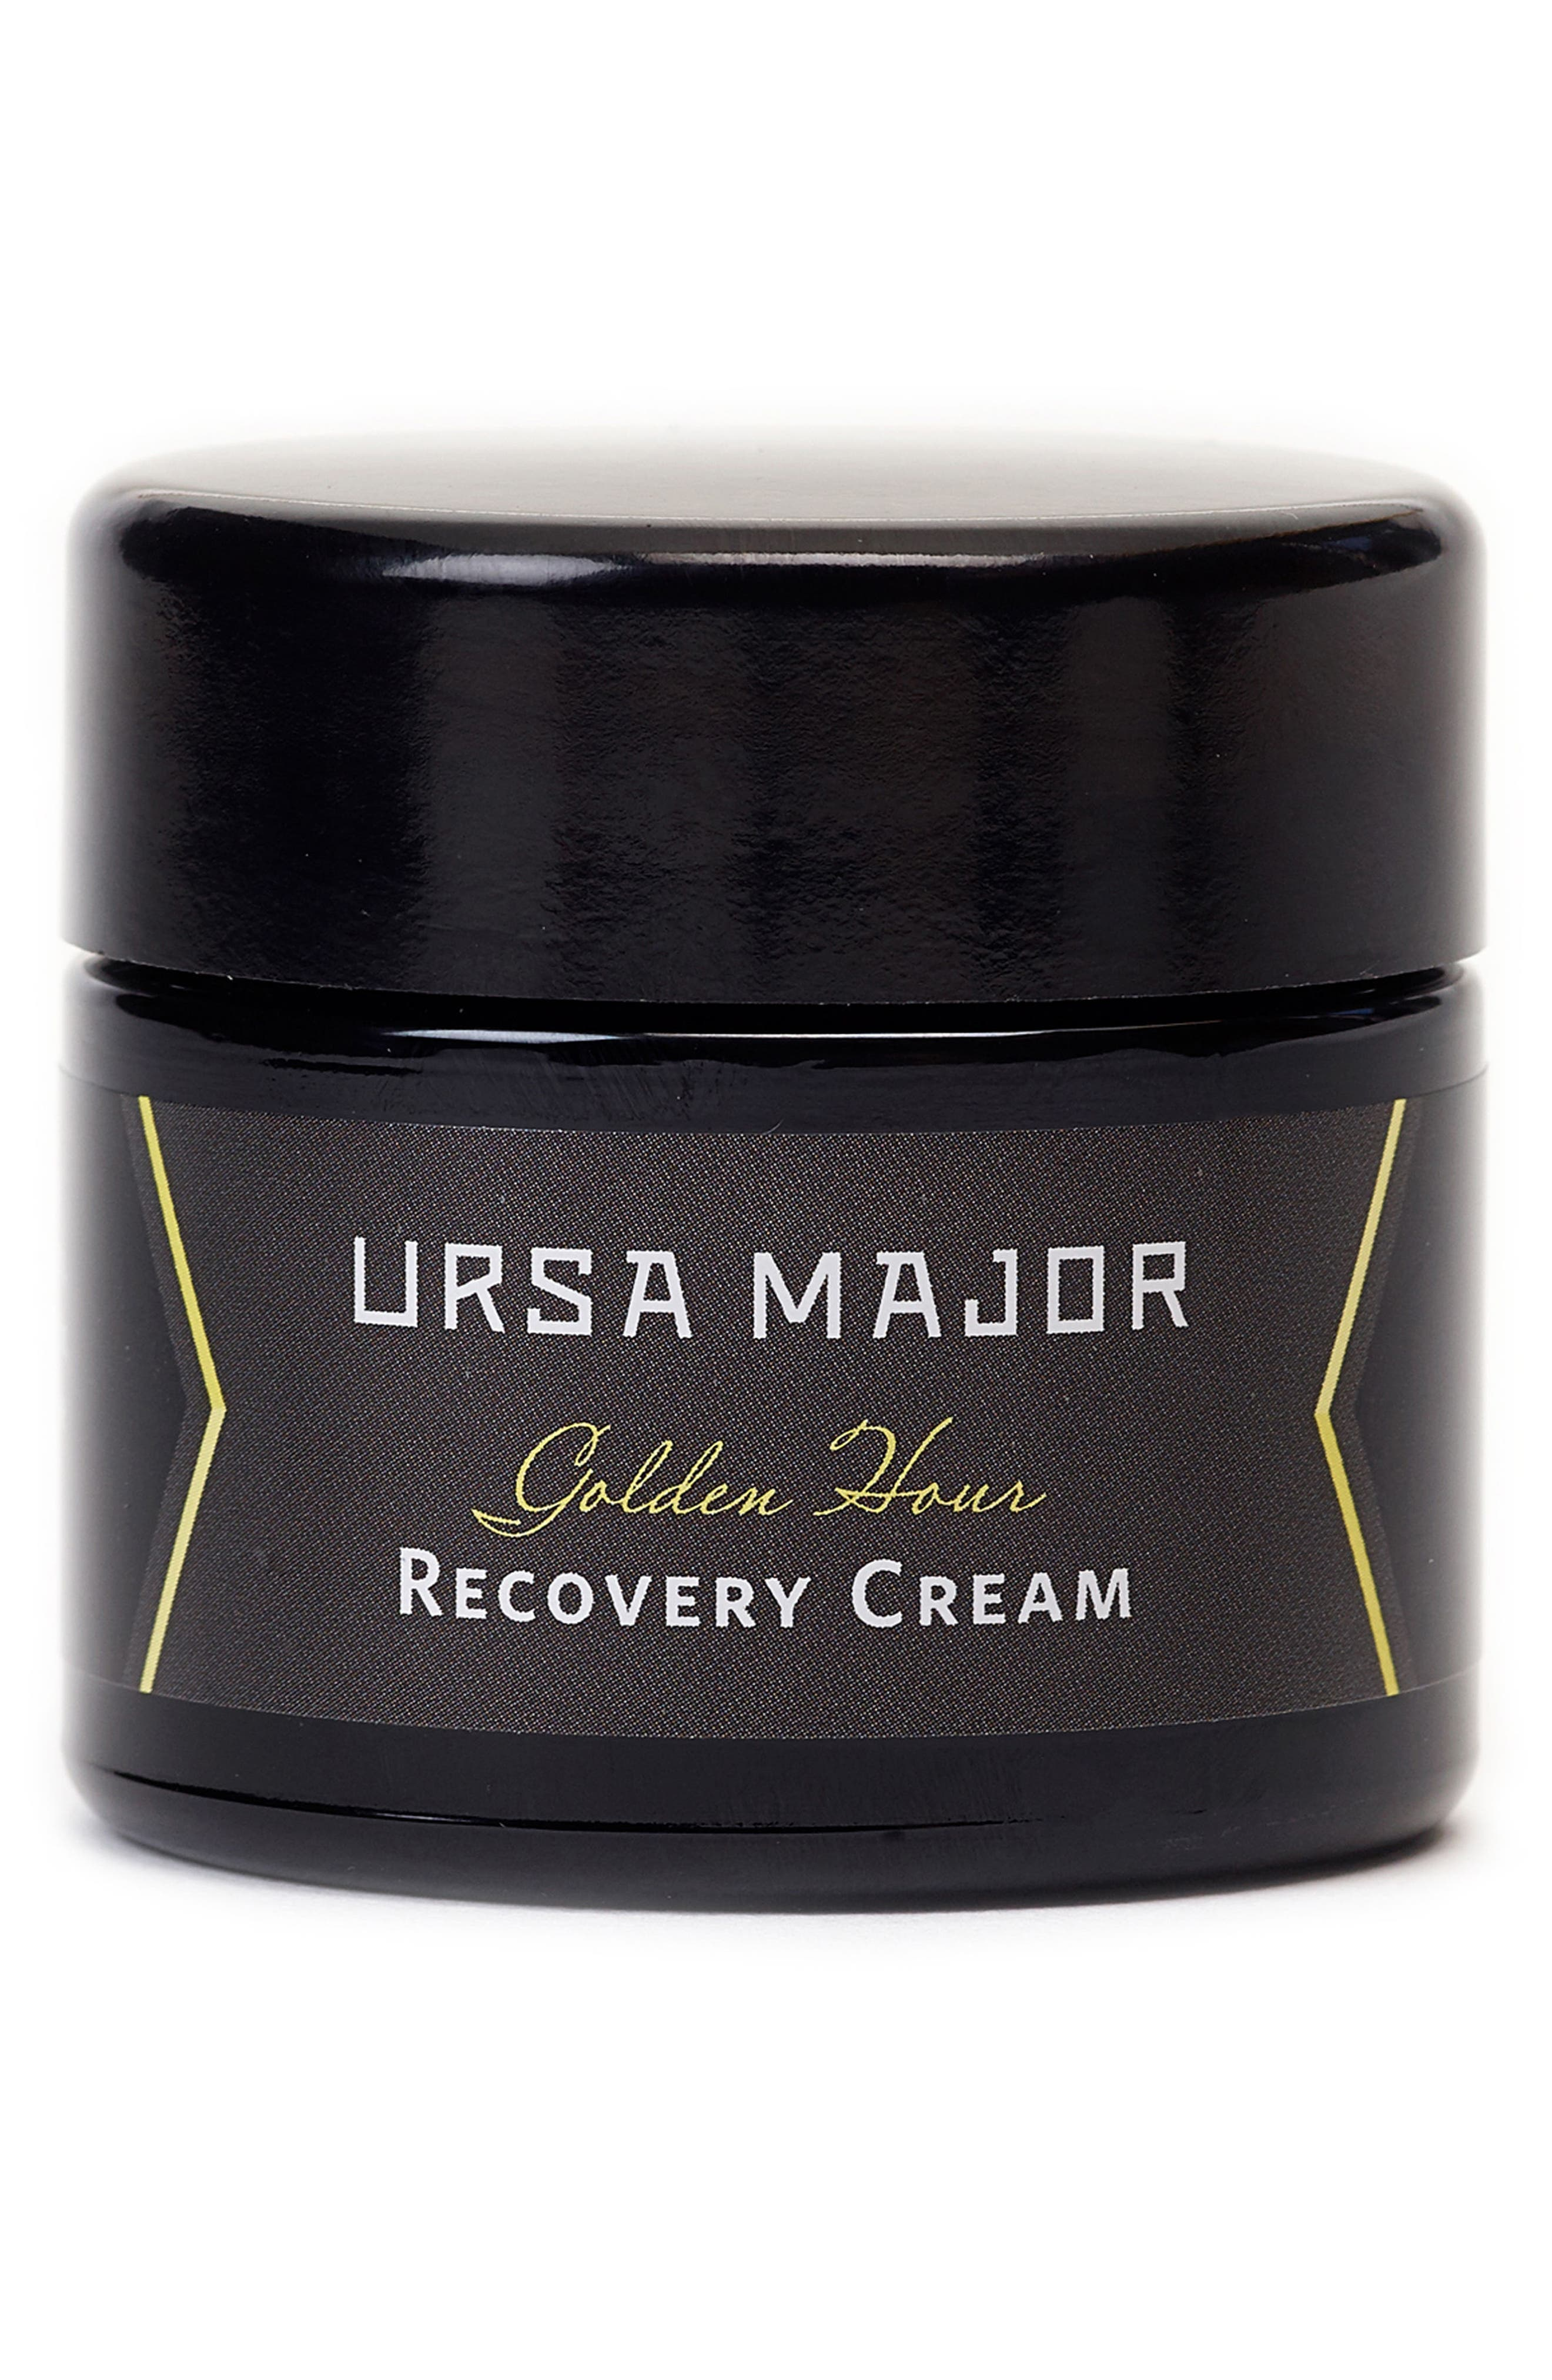 Ursa Major Golden Hour Recovery Cream